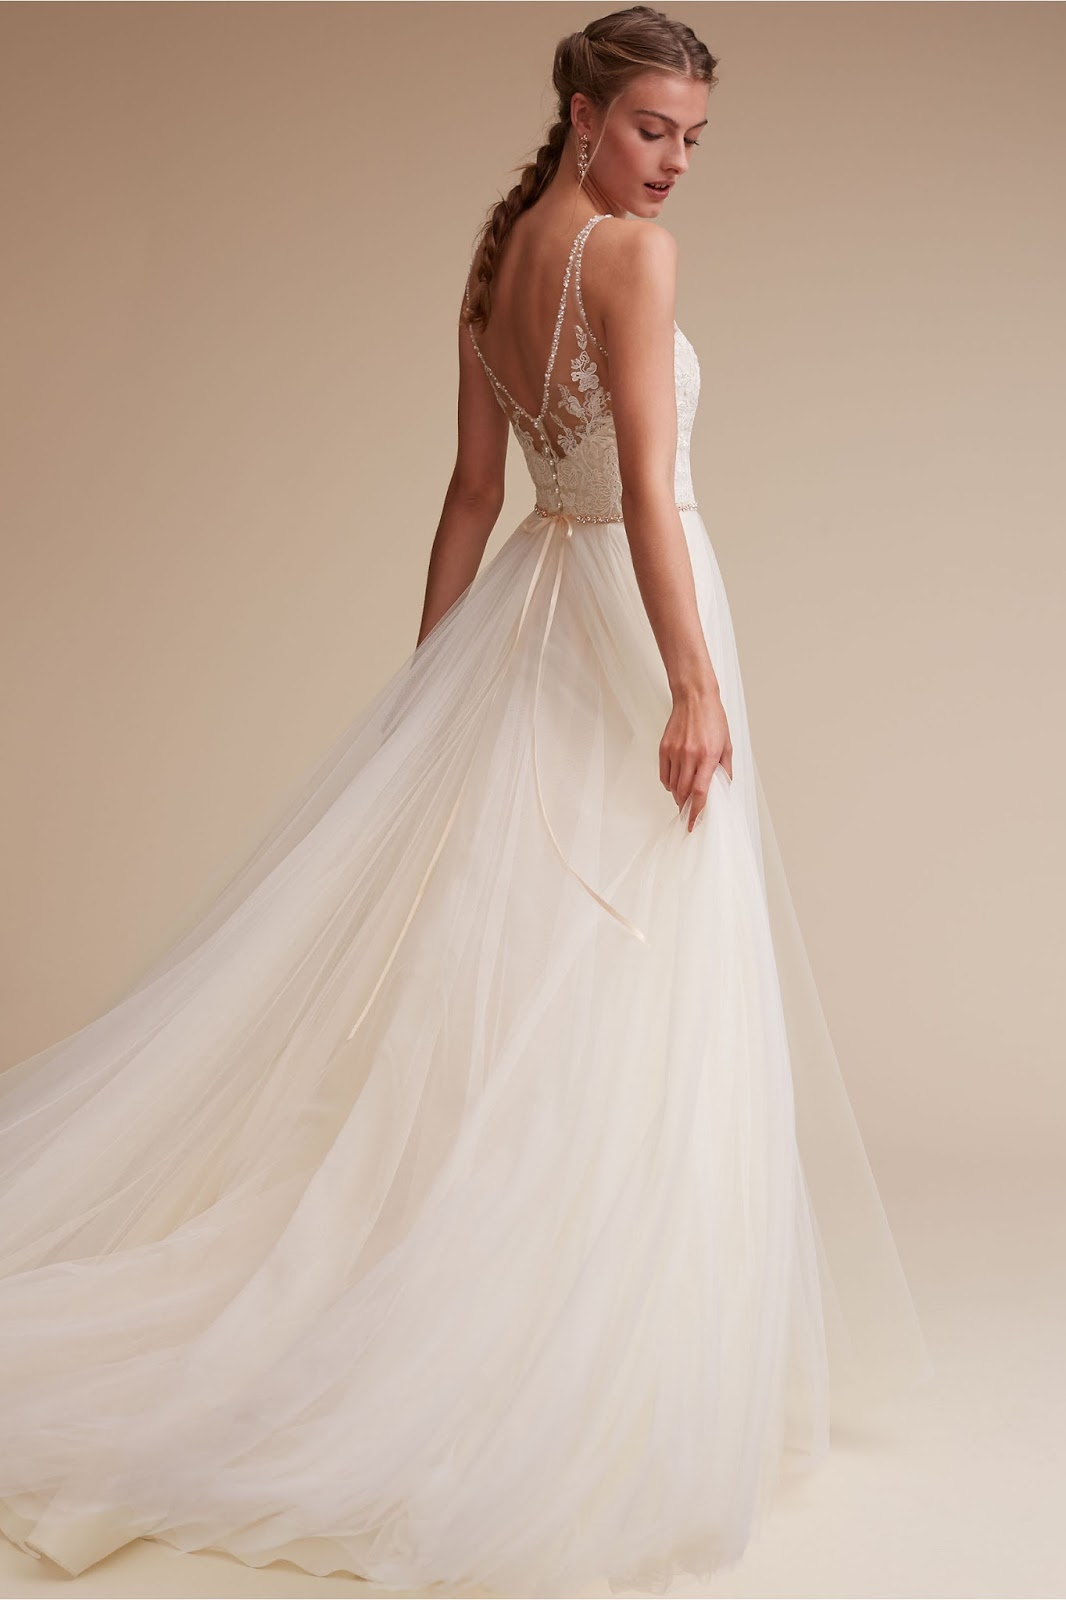 Miss Ruby Boutique: BHLDN Gowns at Miss Ruby Boutique!